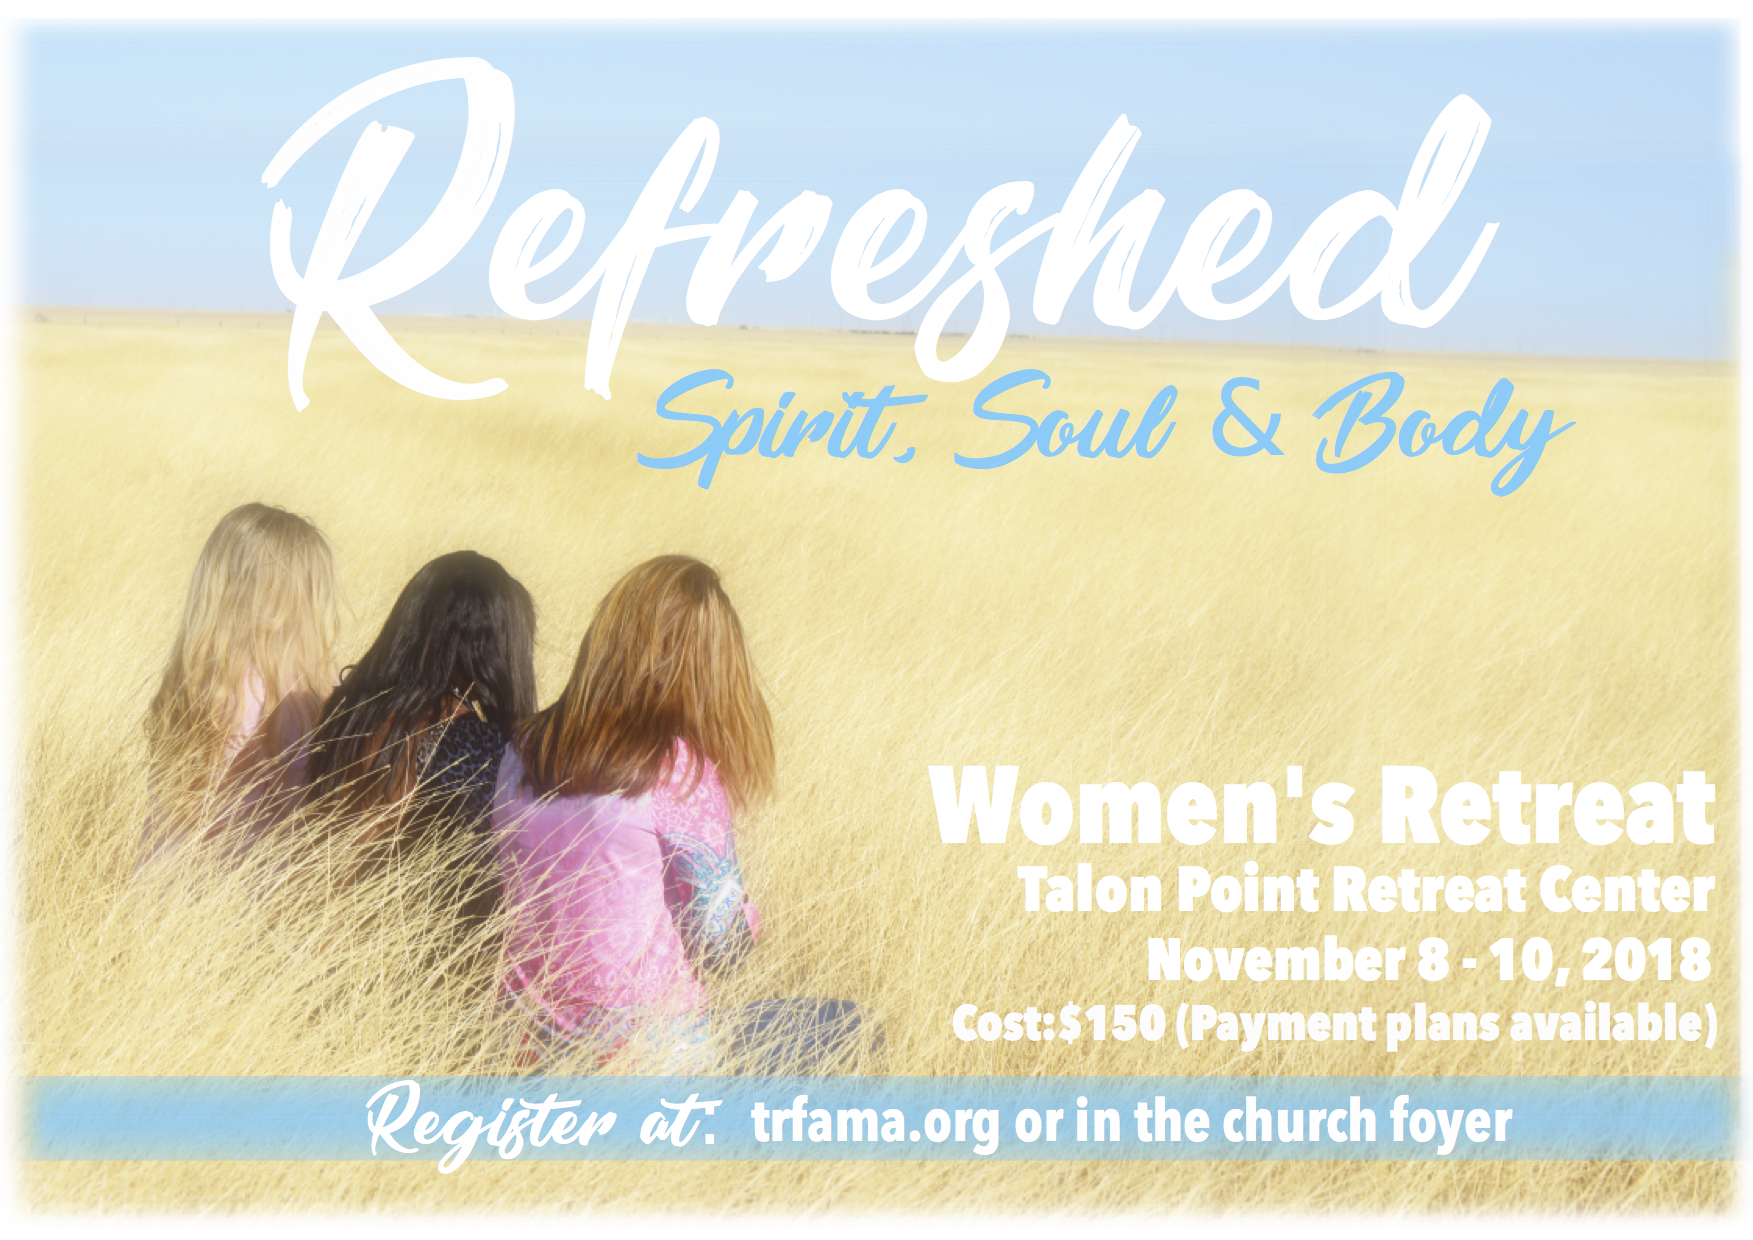 Frontside retreat flyer  002